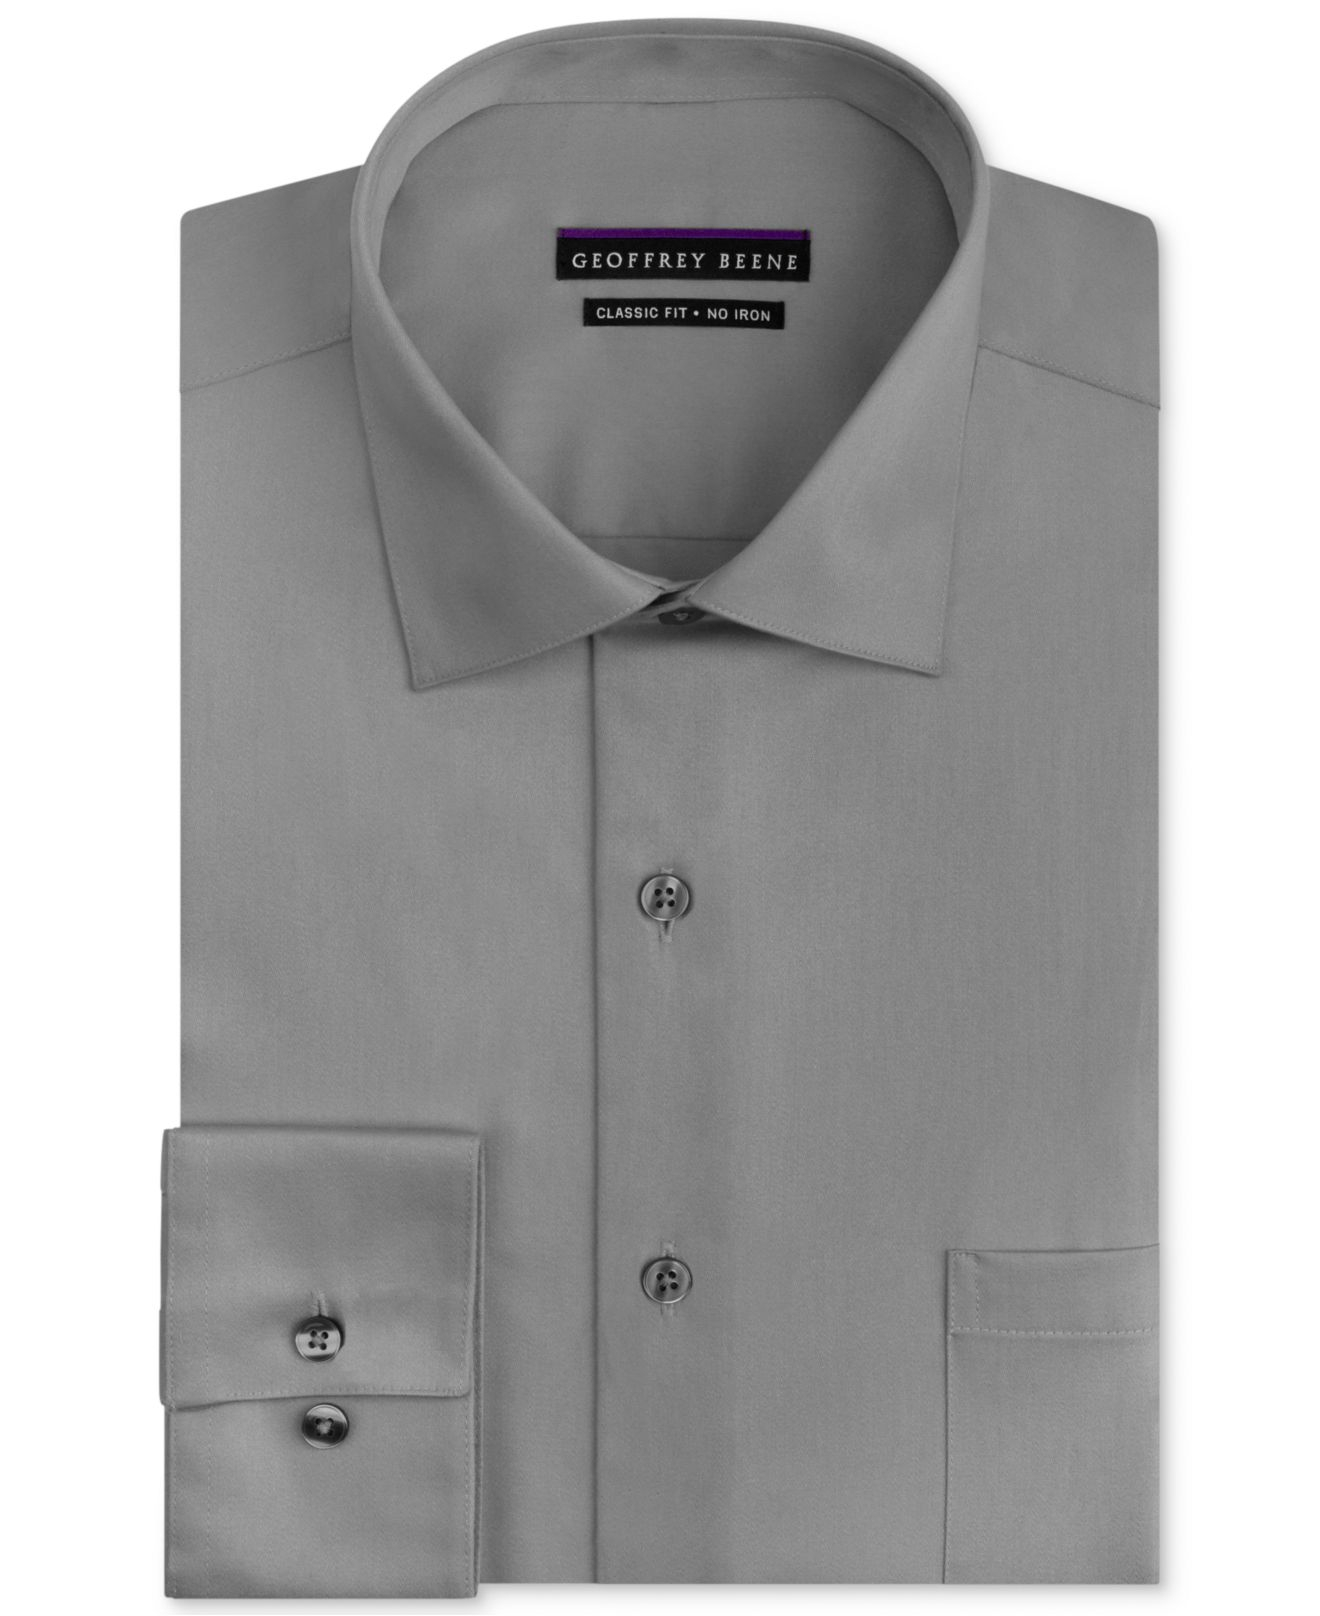 58d1515e494 Geoffrey beene Men s Classic fit Wrinkle free Sateen Dress Shirt in Silver  for Men (. Geoffrey beene Men s. Geoffrey beene Men s Fitted No iron Stretch  ...